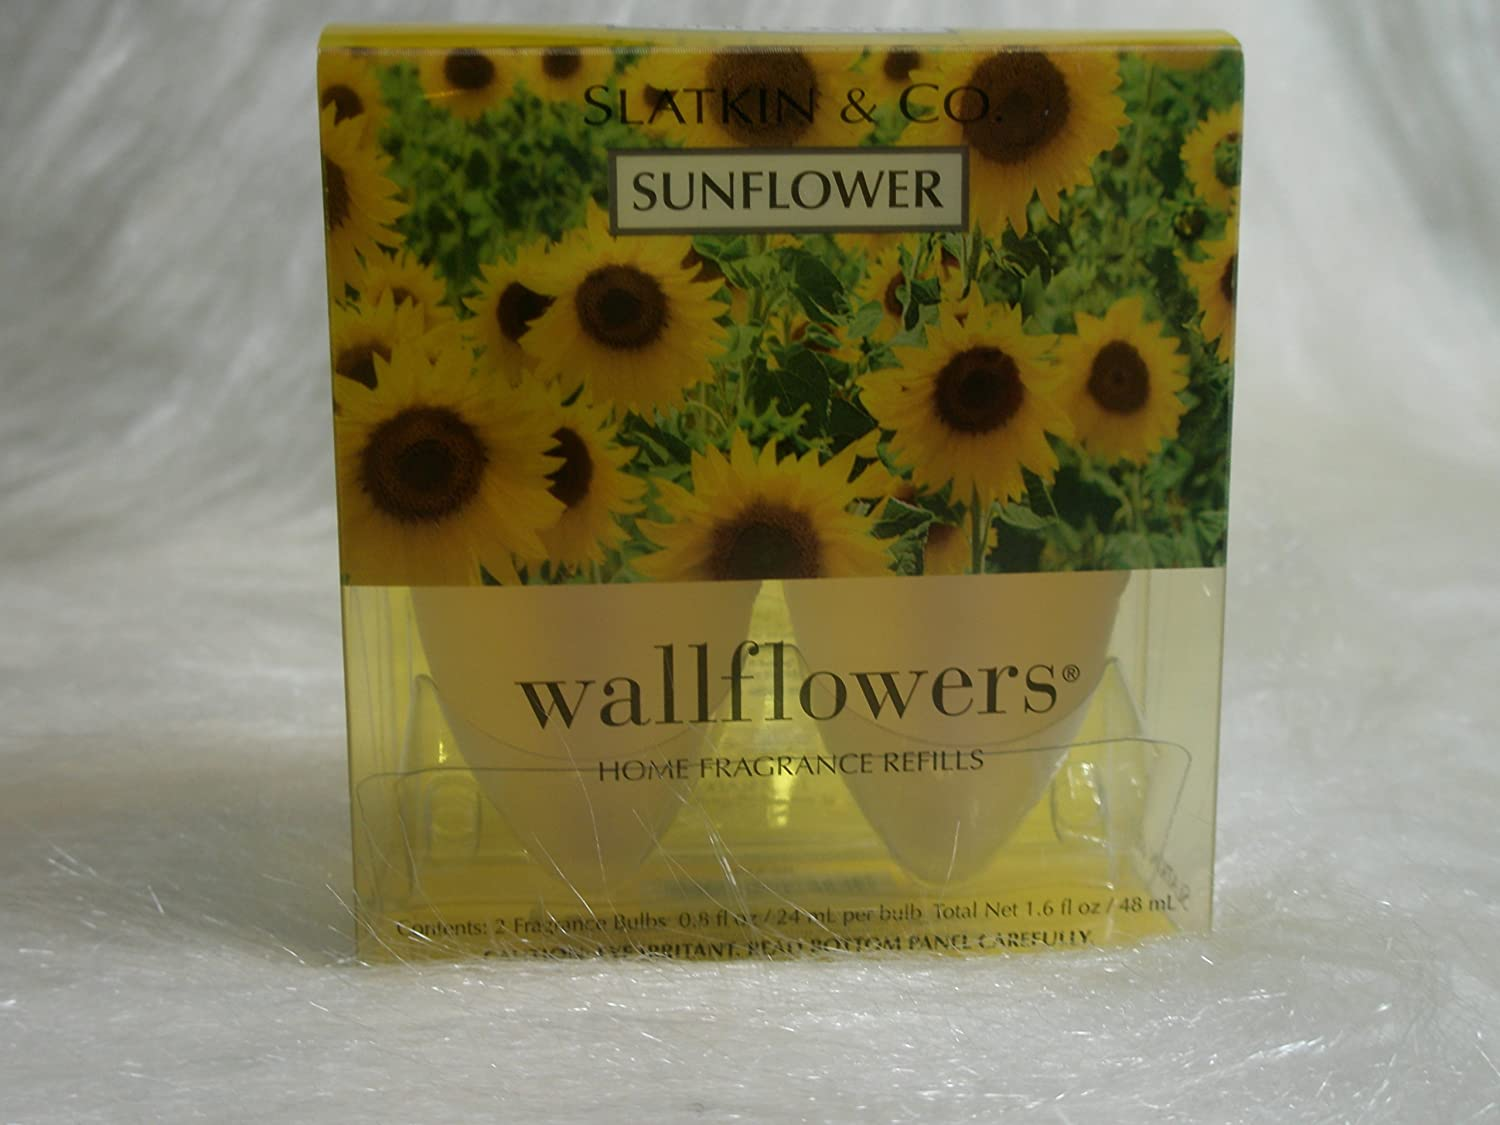 Bath & Body Works Slatkin & Co. Sunflower Wallflower Home Fragrance Refills enovo hi q medical teaching model 26cm body trunk model anatomical organ model of human body system